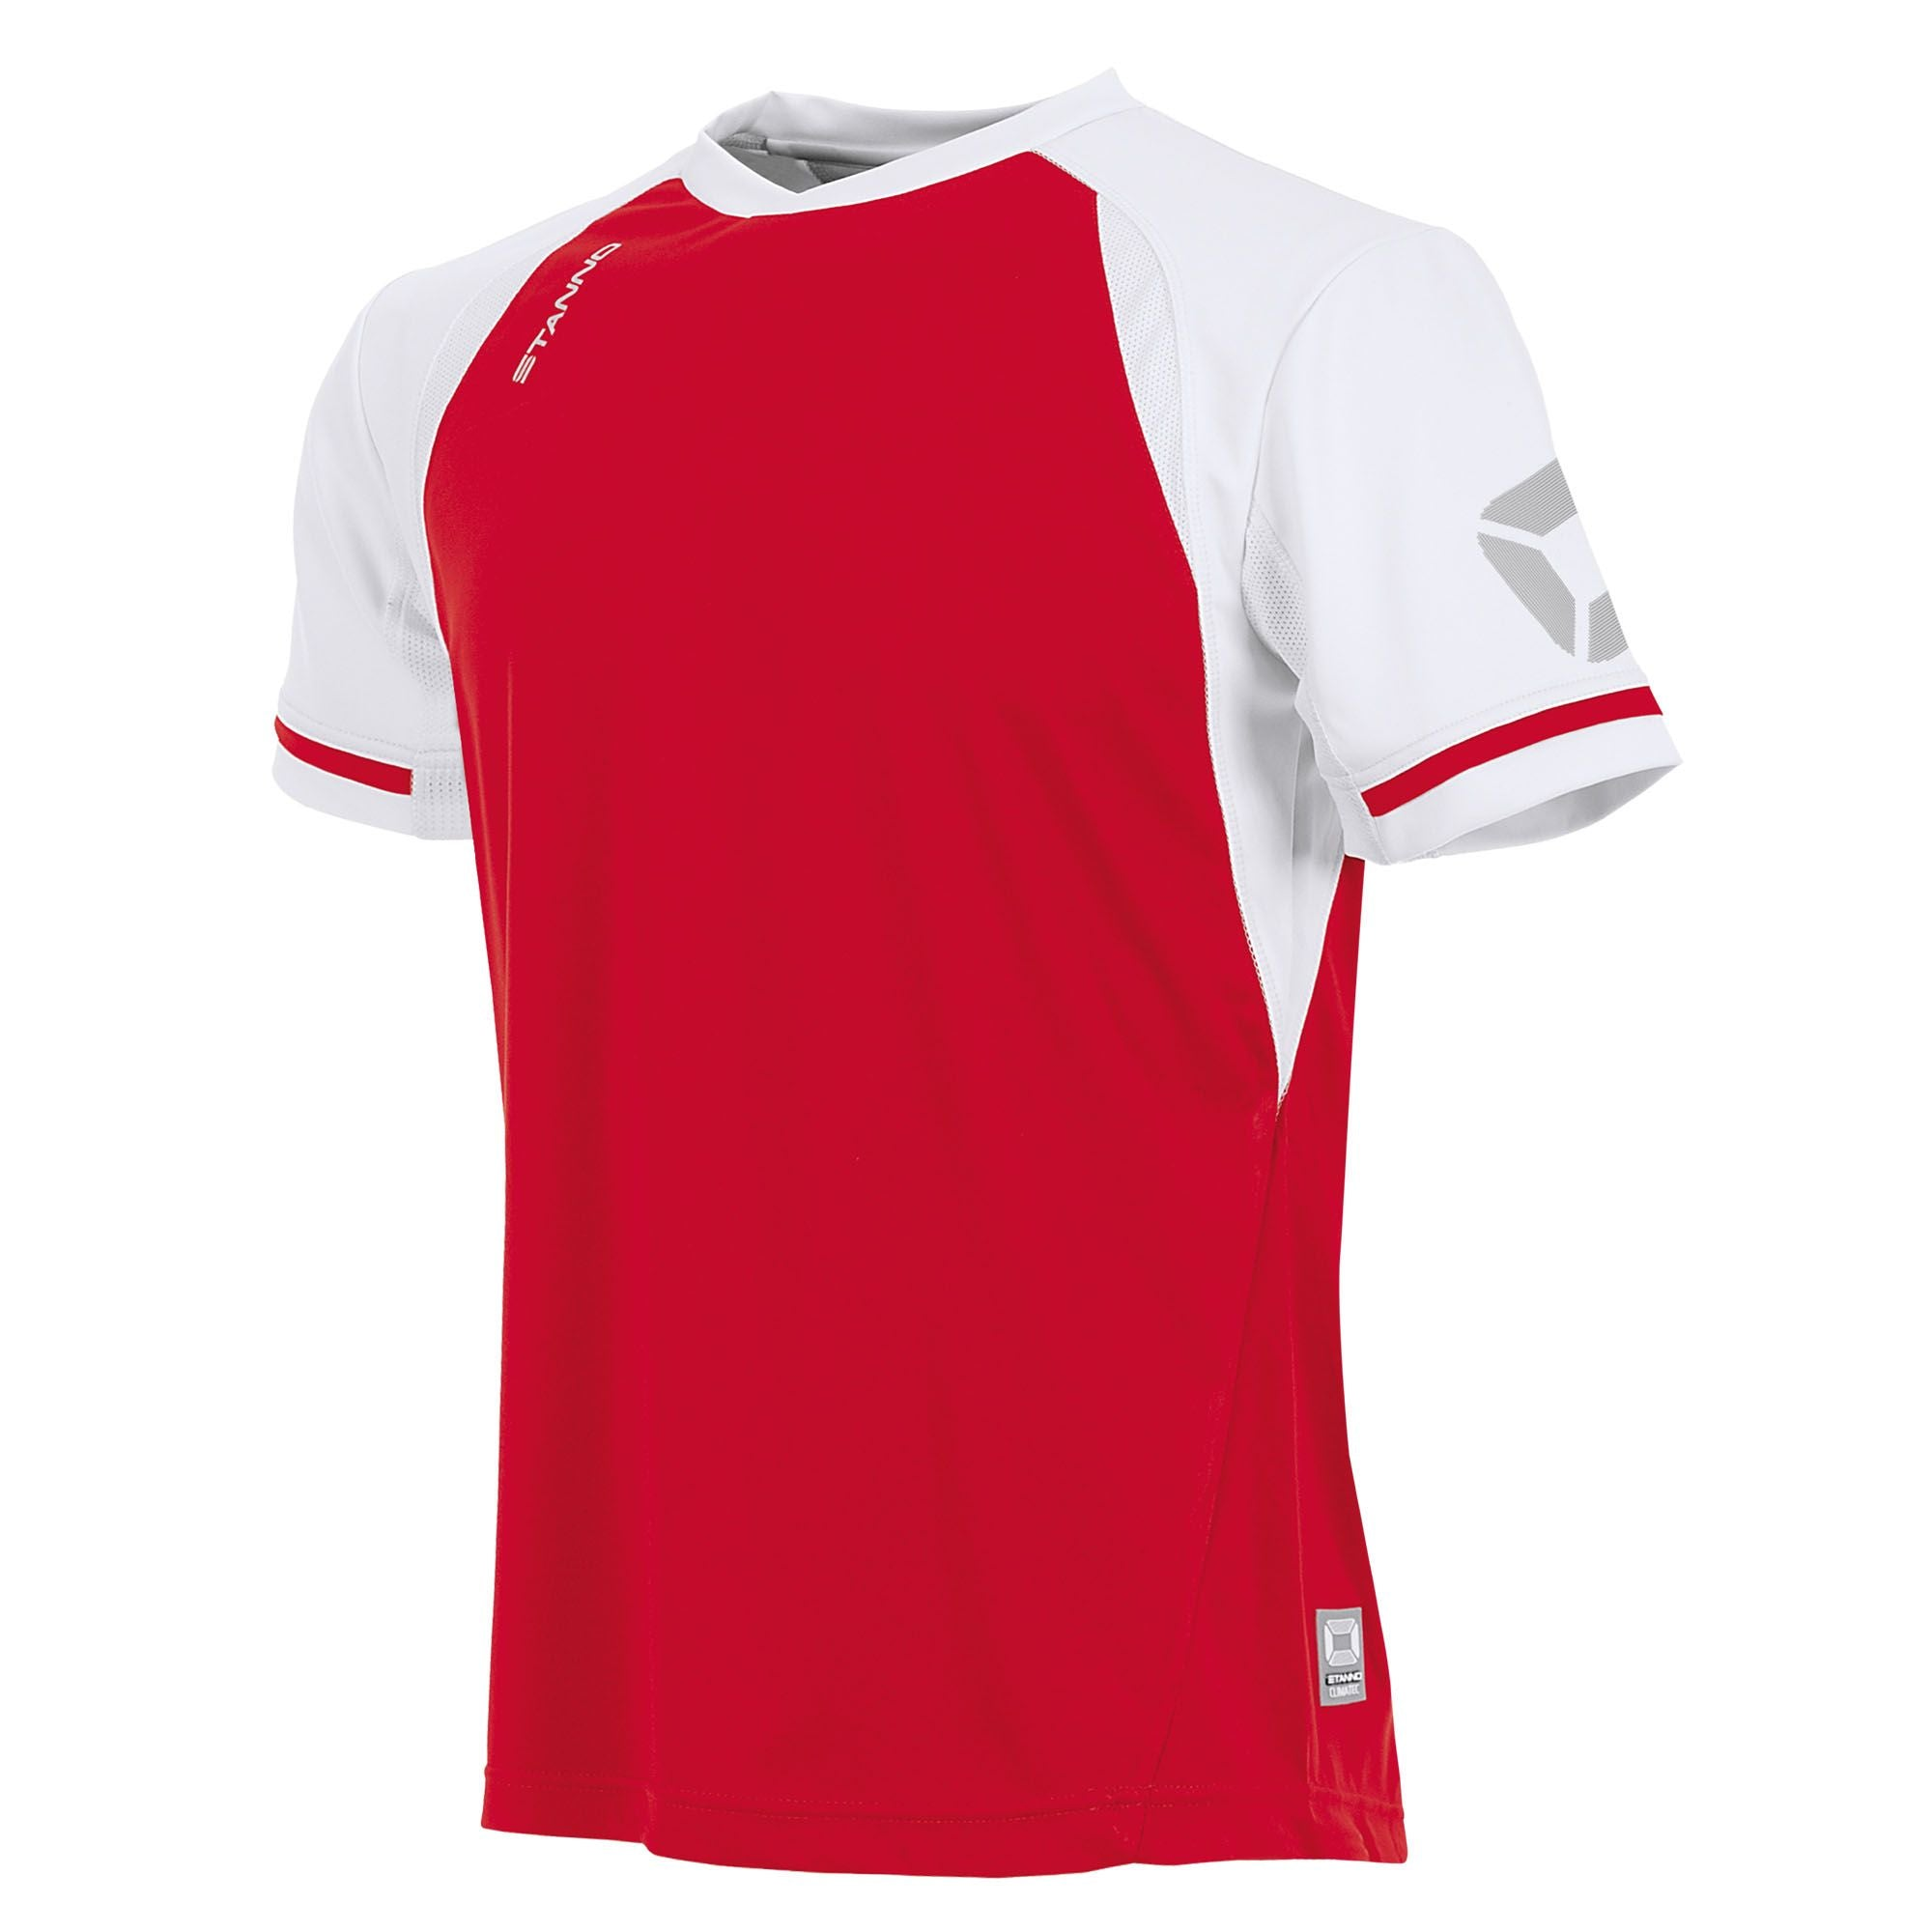 short sleeved Stanno Liga shirt in red with contrast white sleeves and collar, Stadium logo on the sleeve.